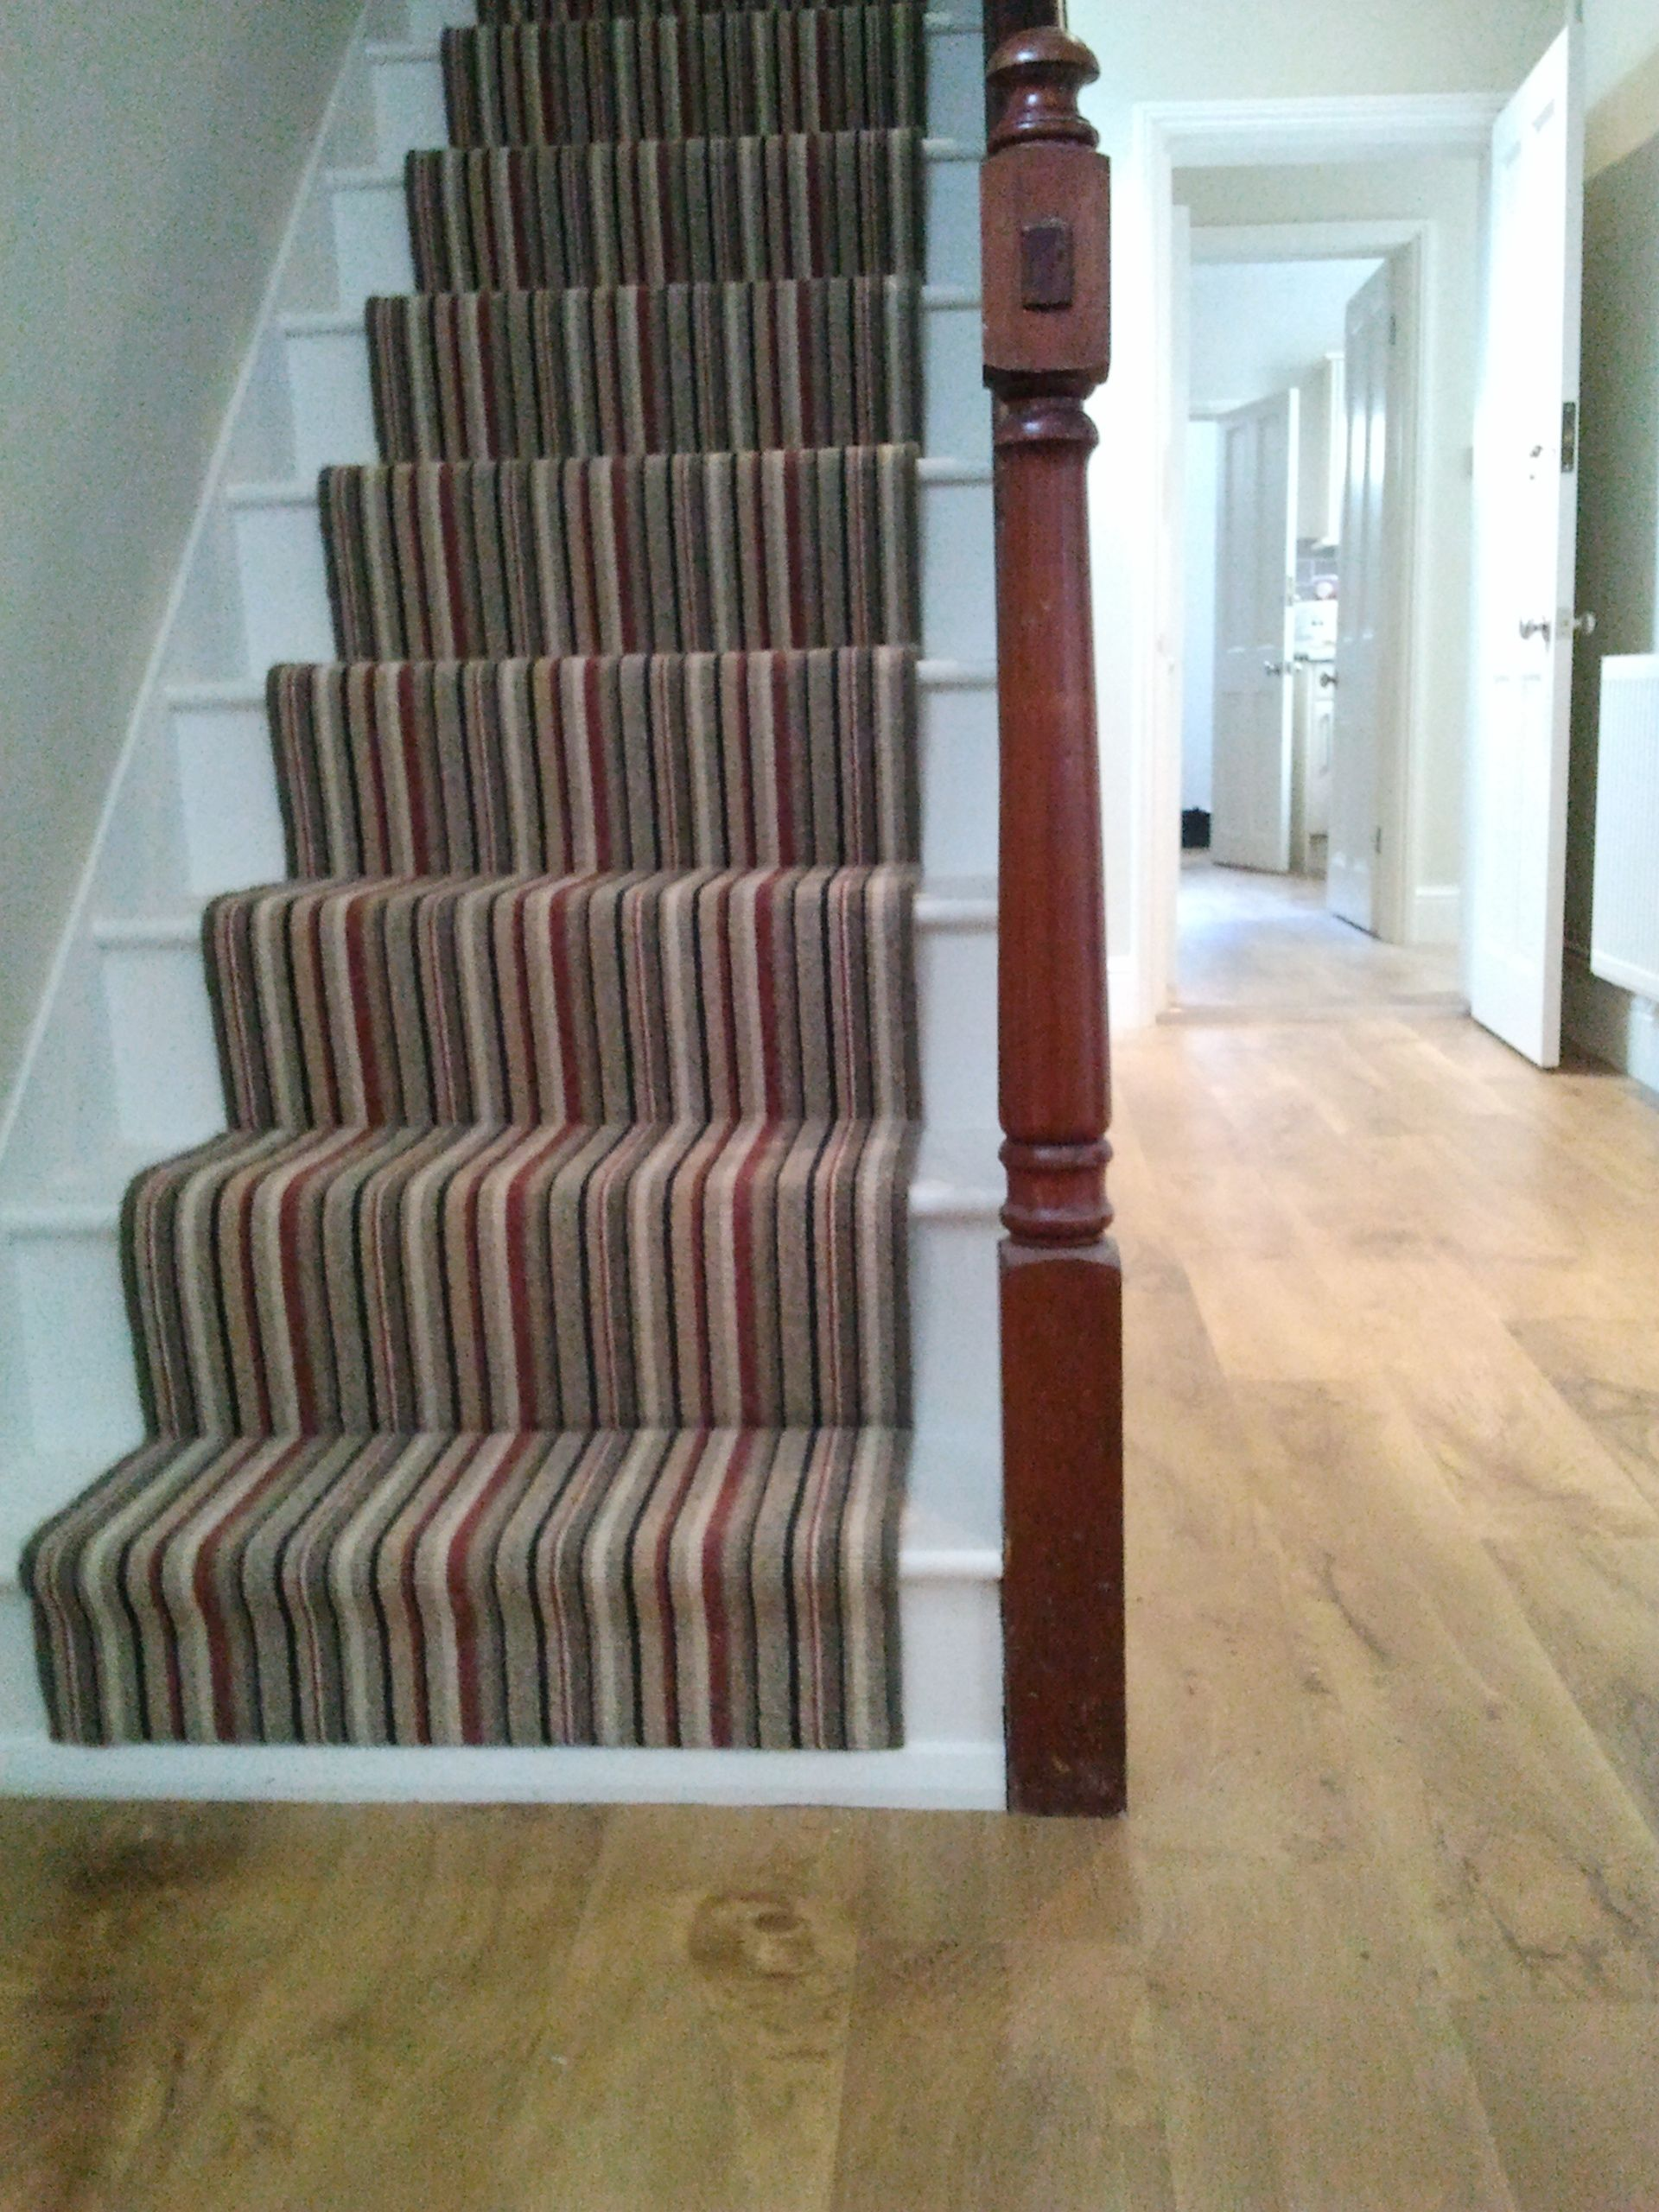 Best Love The Effect Of Stripes On Stairs Just Seems To Lead 400 x 300